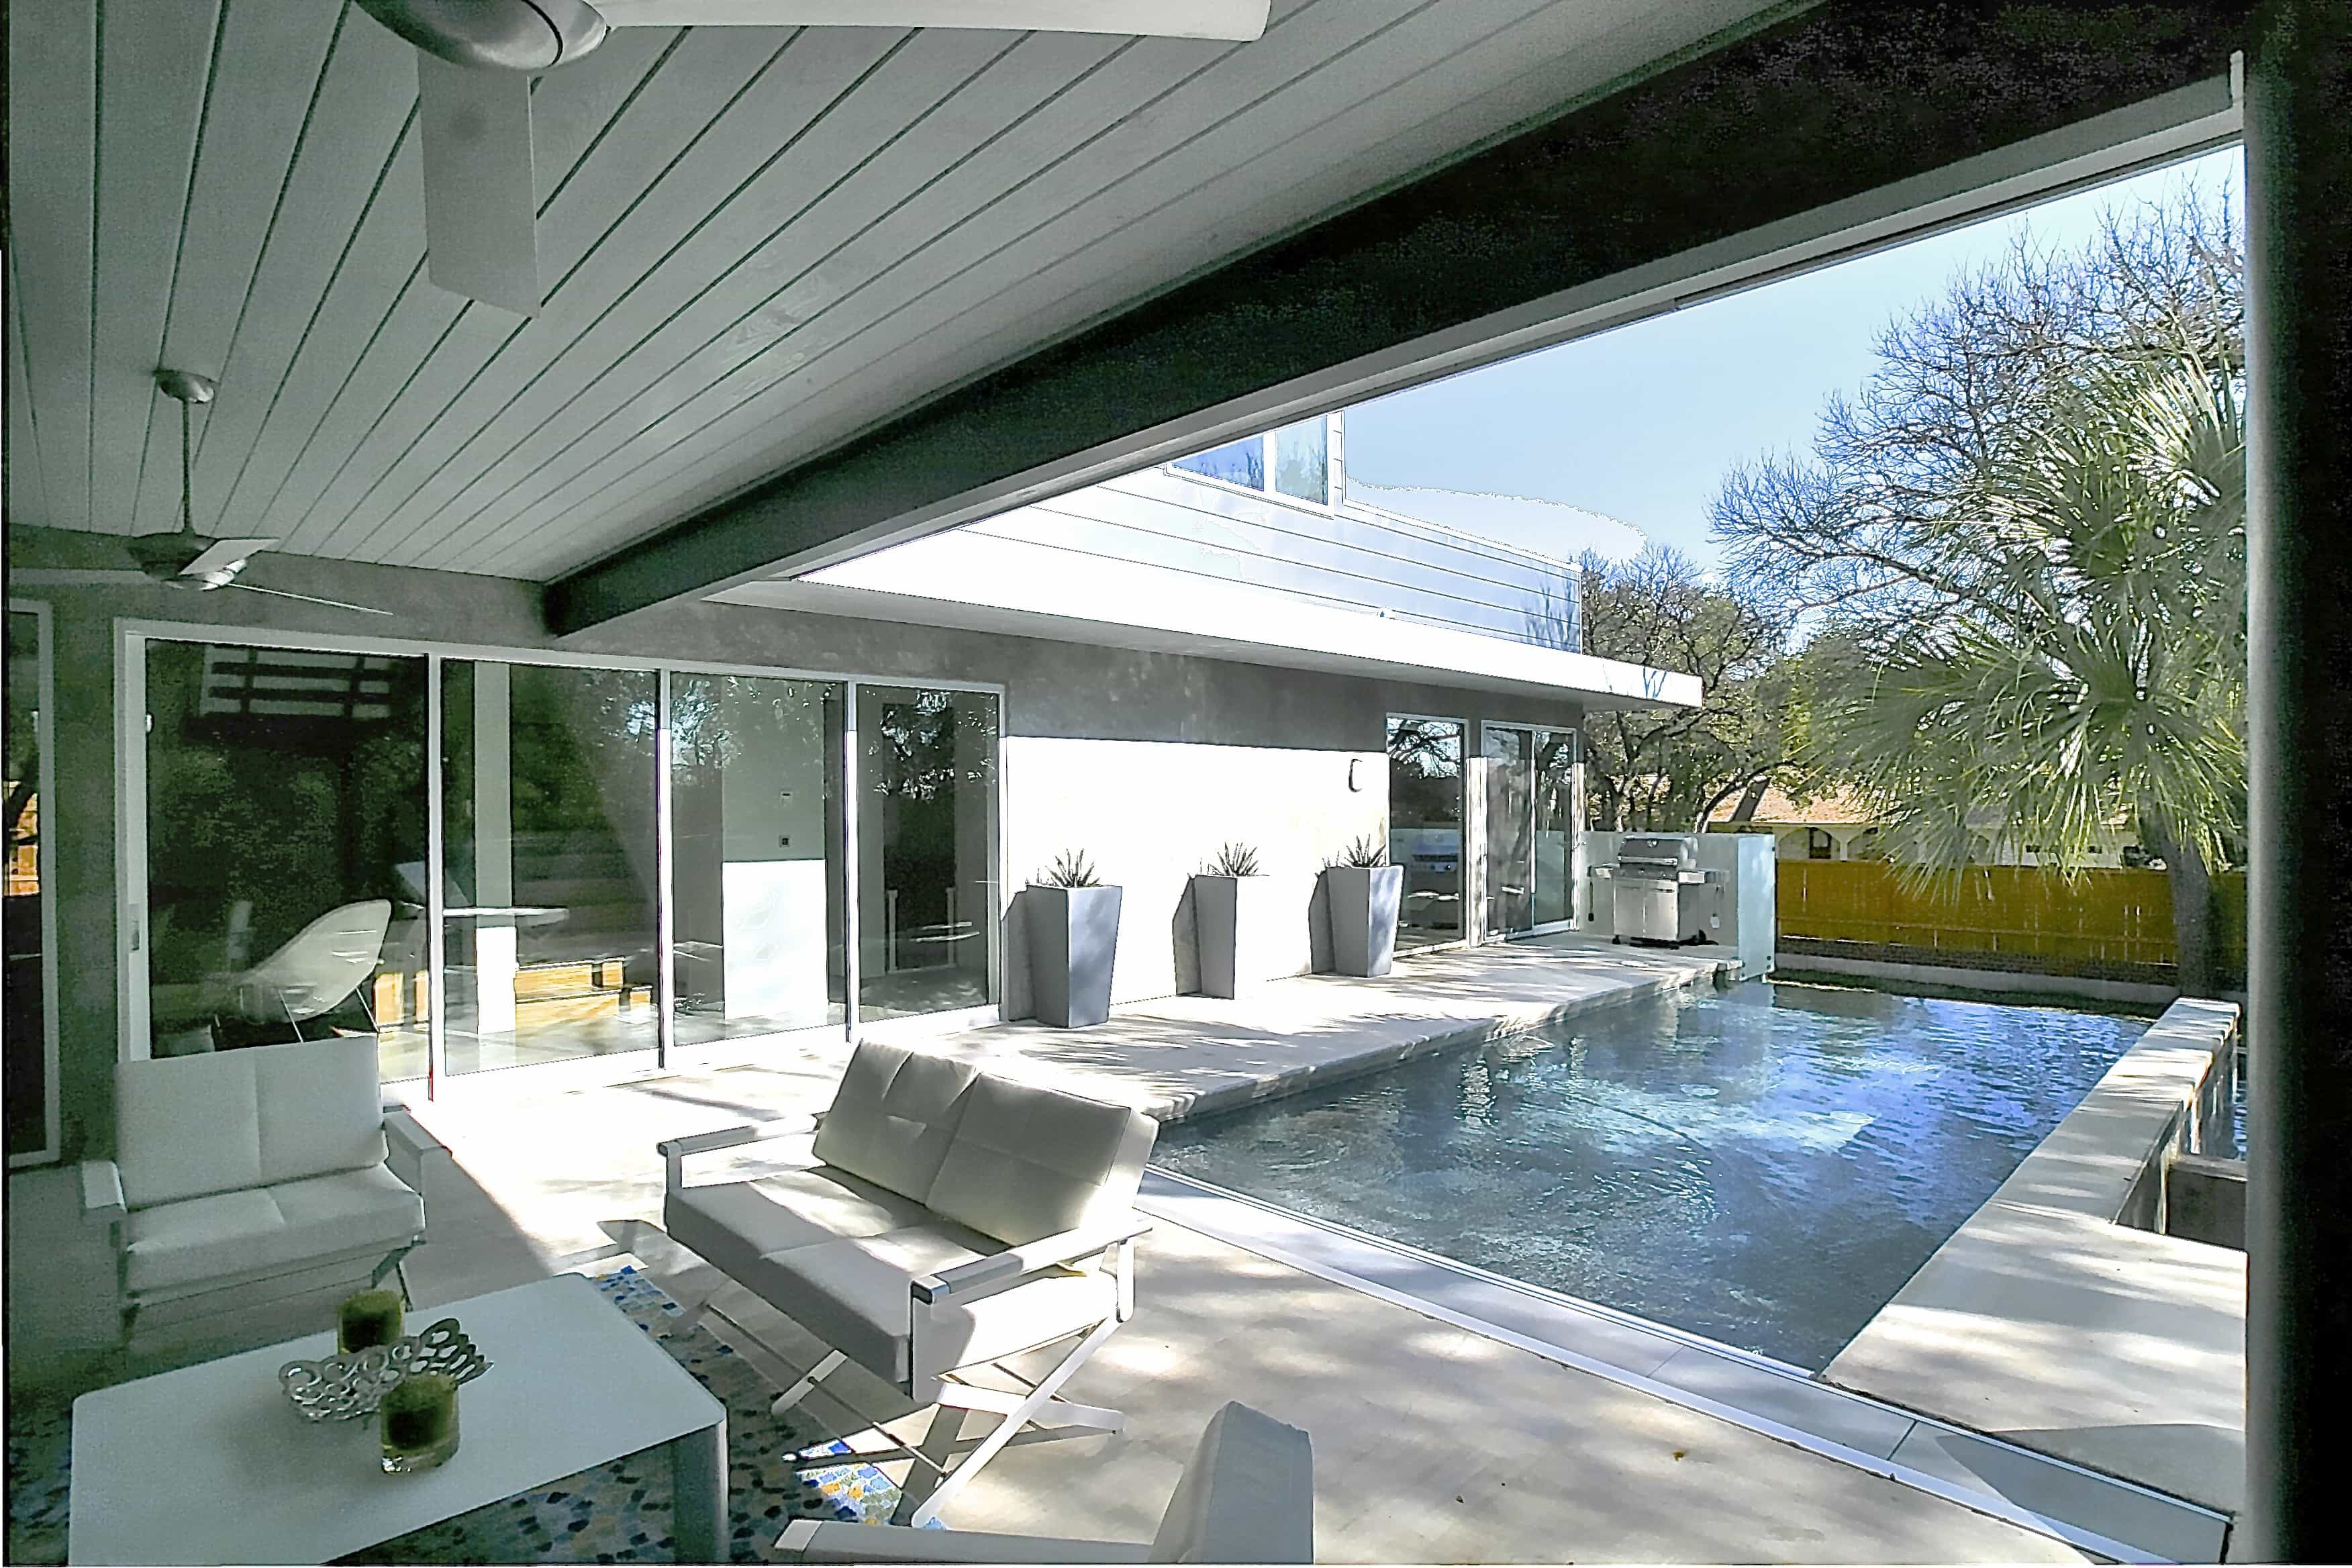 Modern Covered Patio By Swimming Pool (View 18 of 25)